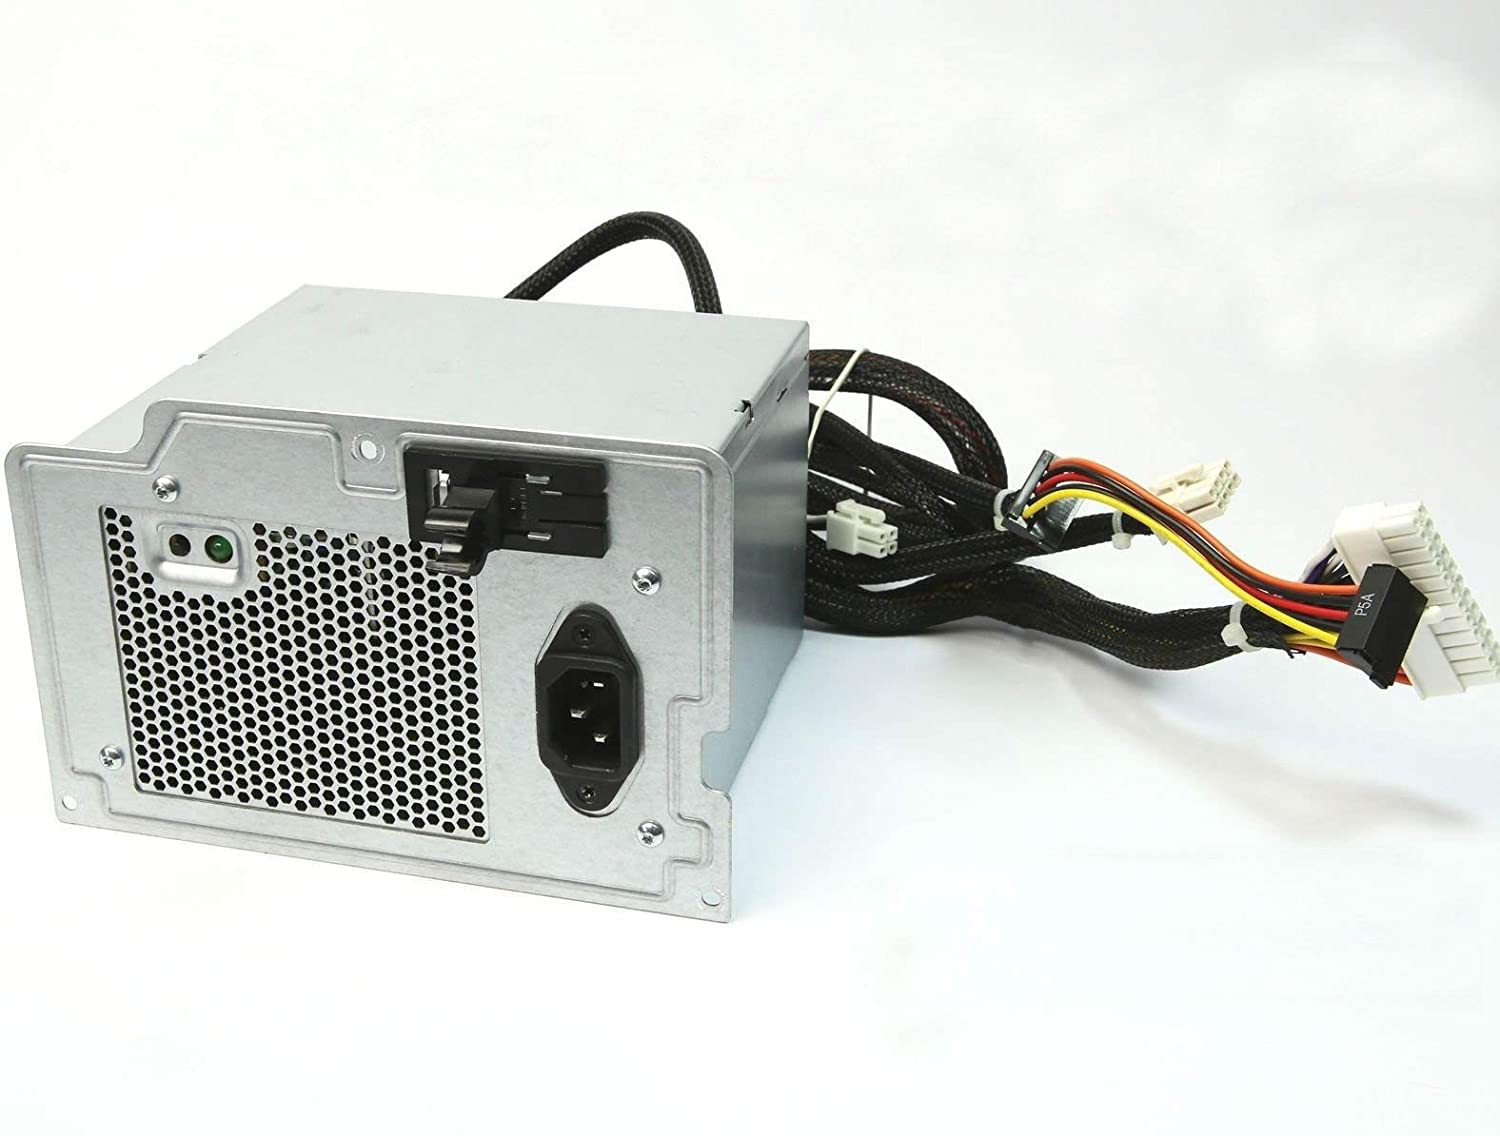 New 375W Power Supply for DELL PowerEdge T310 L375E-S0 N375P-01 T122K T128K (Renewed)